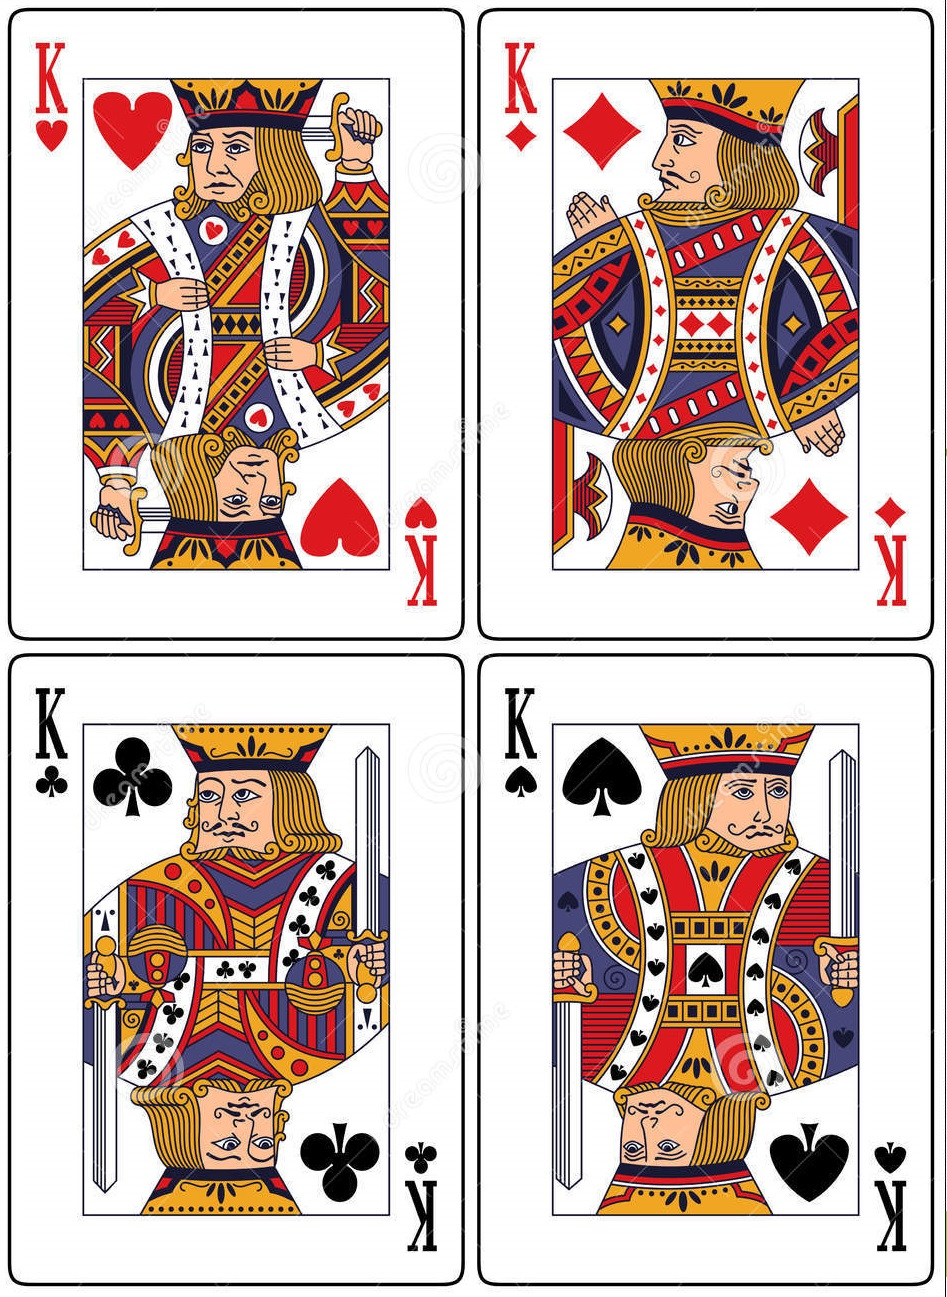 playing-cards-kings-8685646